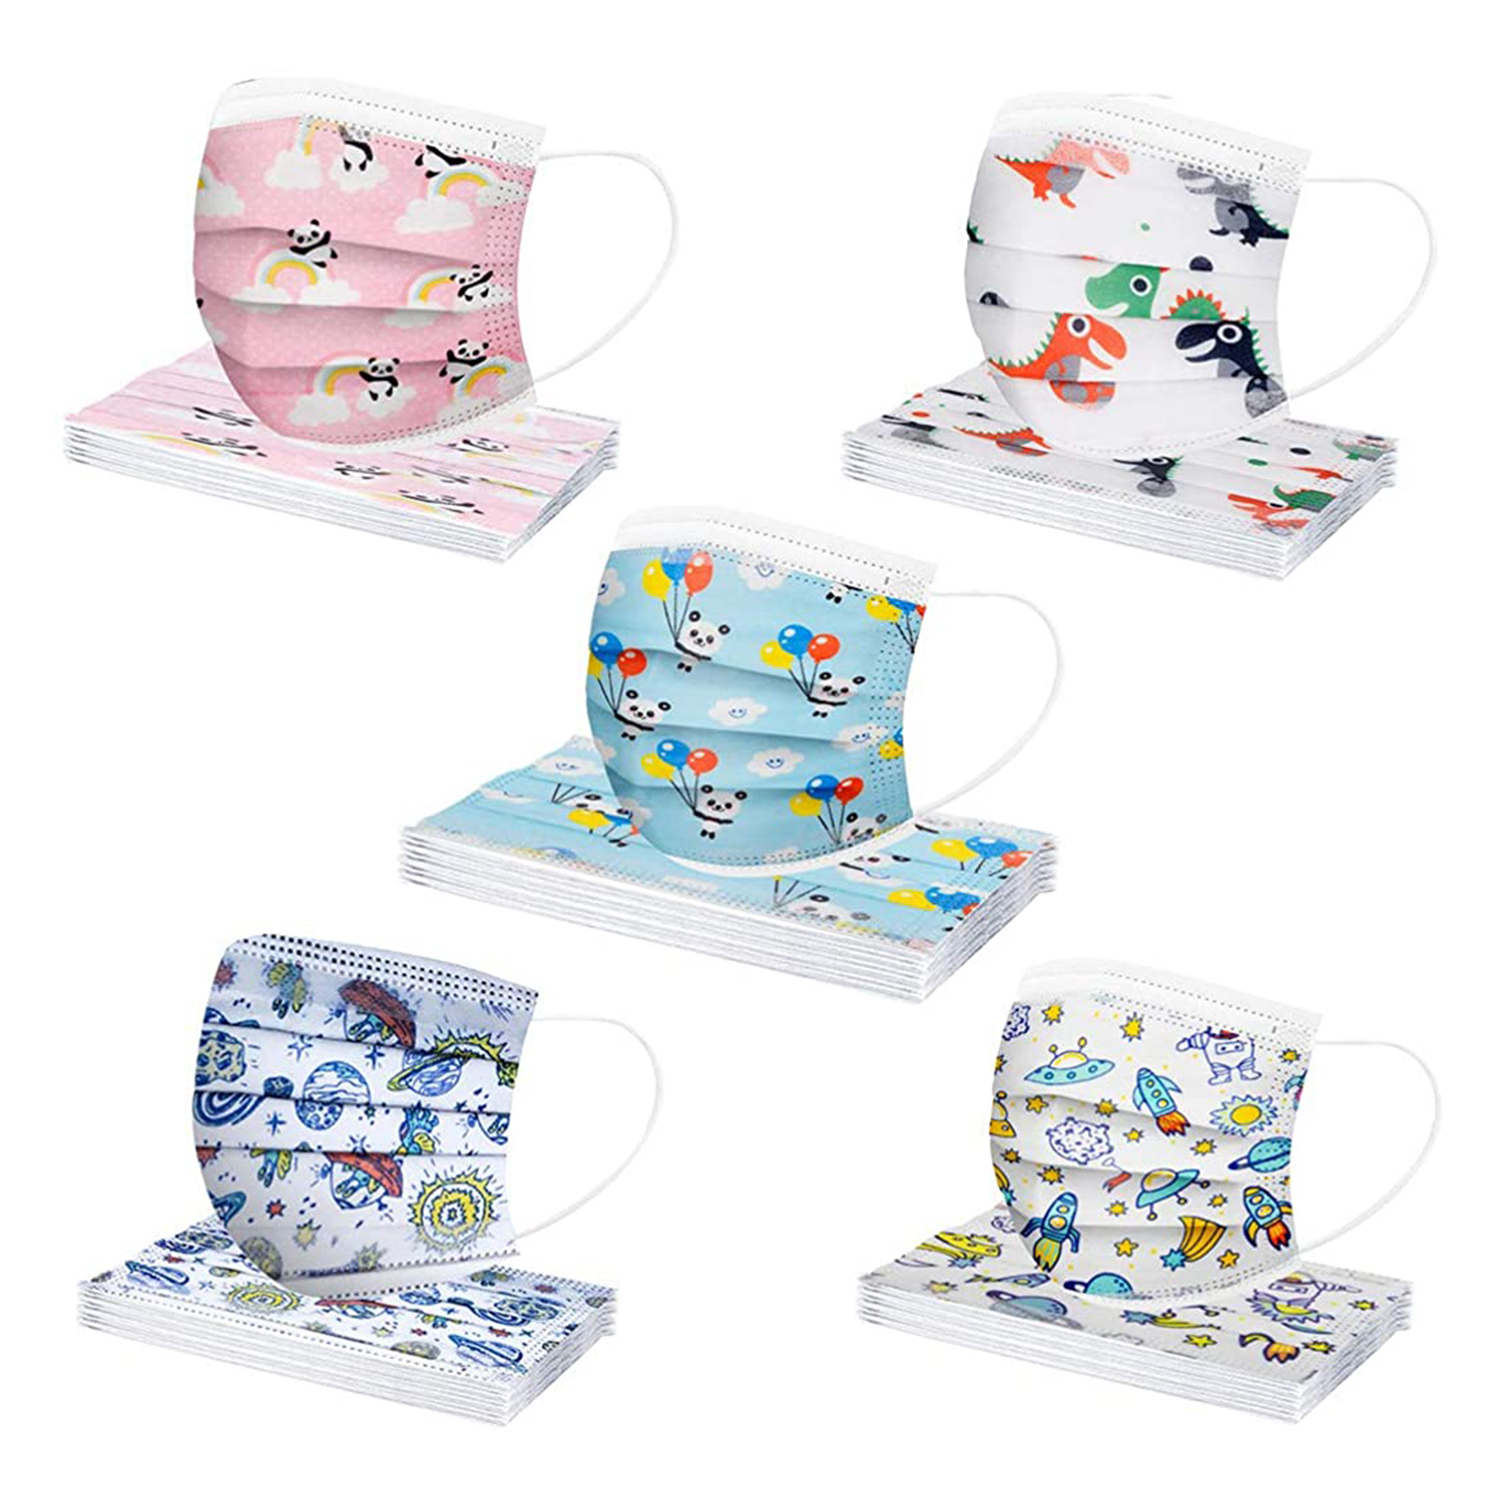 3 Ply Non-Woven and Breathable, Cute Cartoon